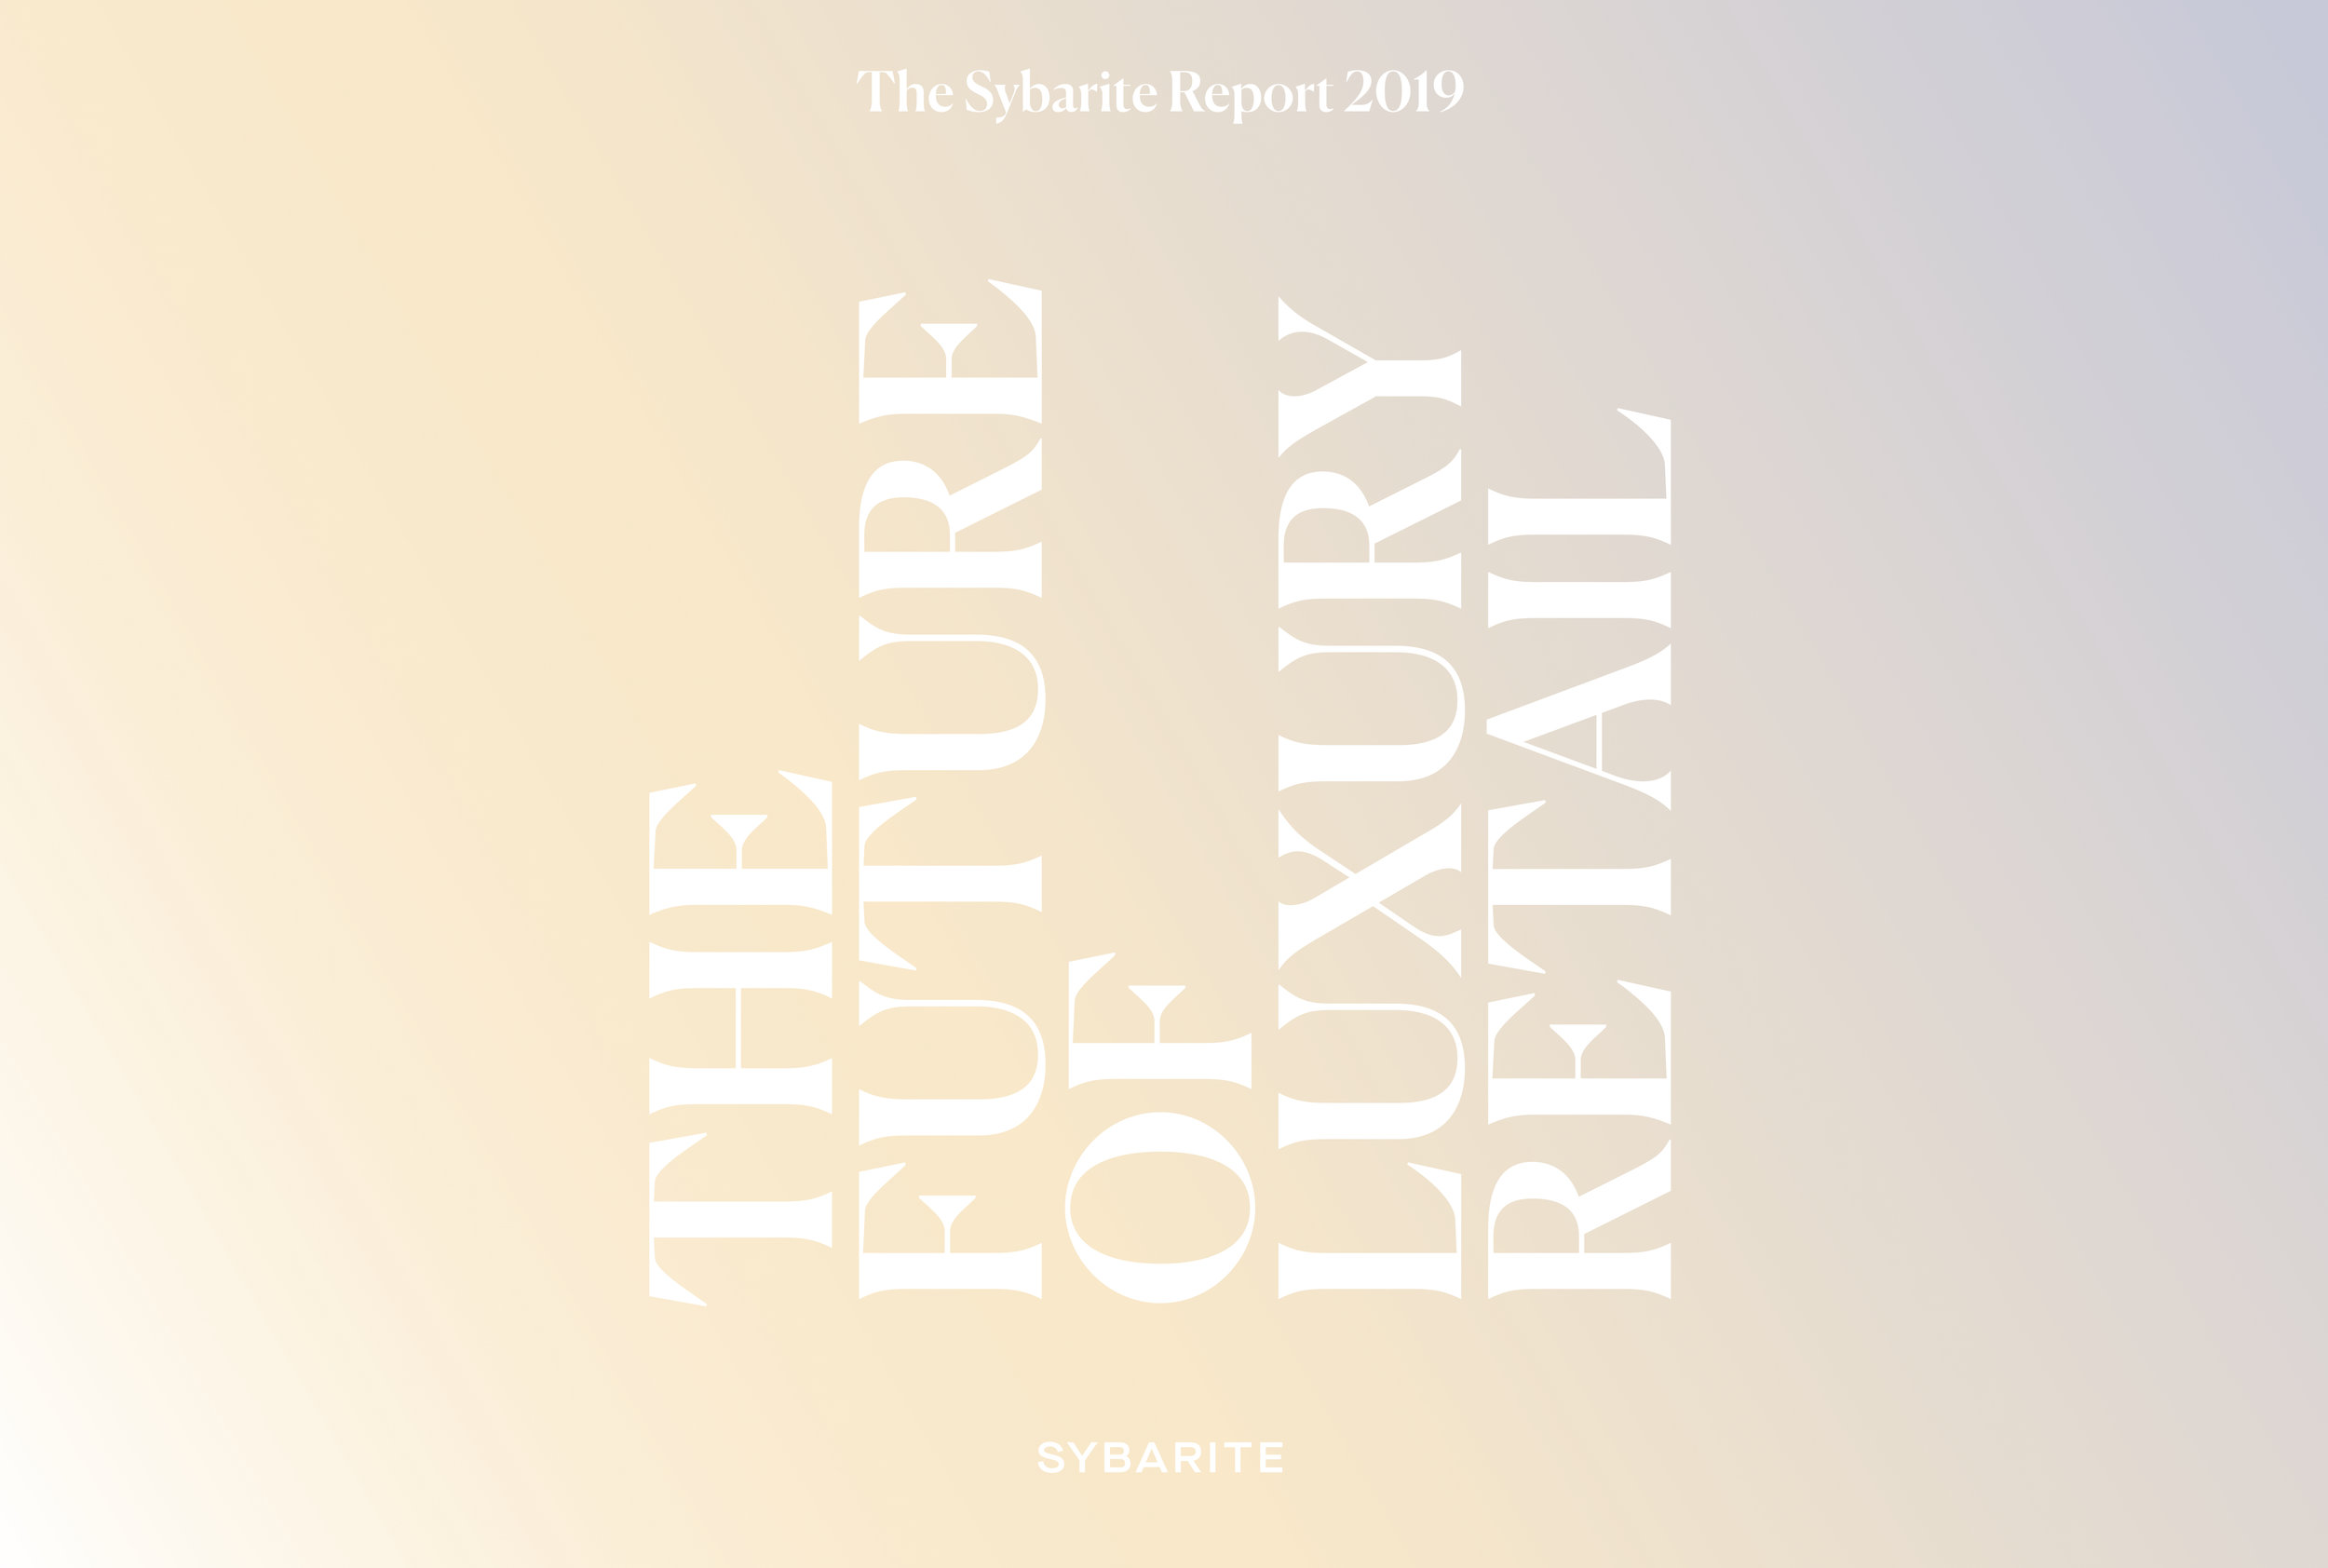 UAE retail analysis, The Future of Luxury Retail: The Sybarite Report 2019